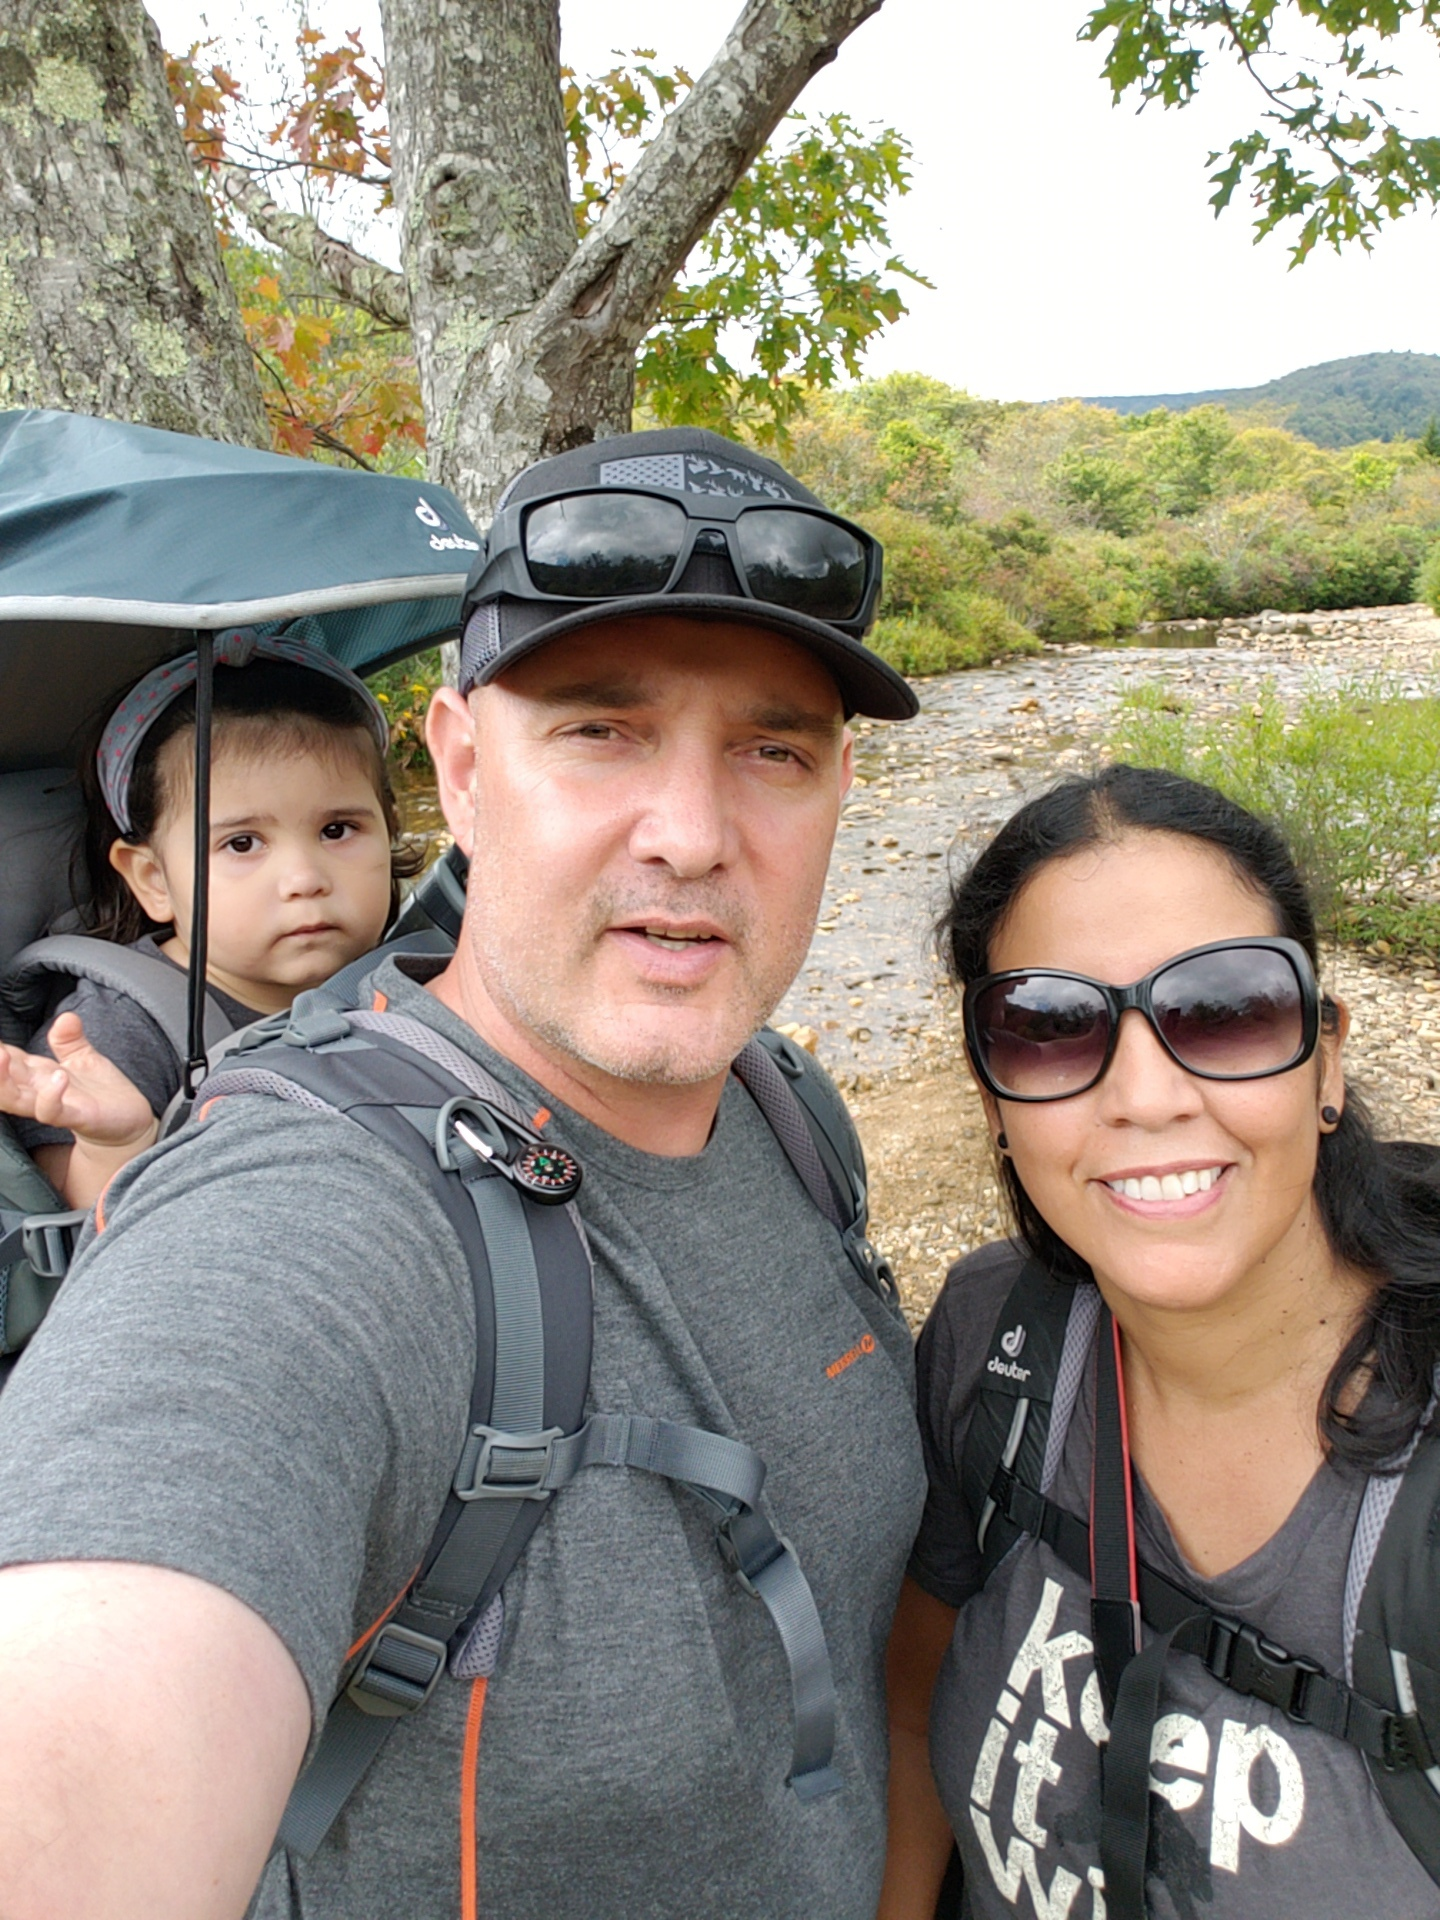 Family hike using a Deuter baby carrier.